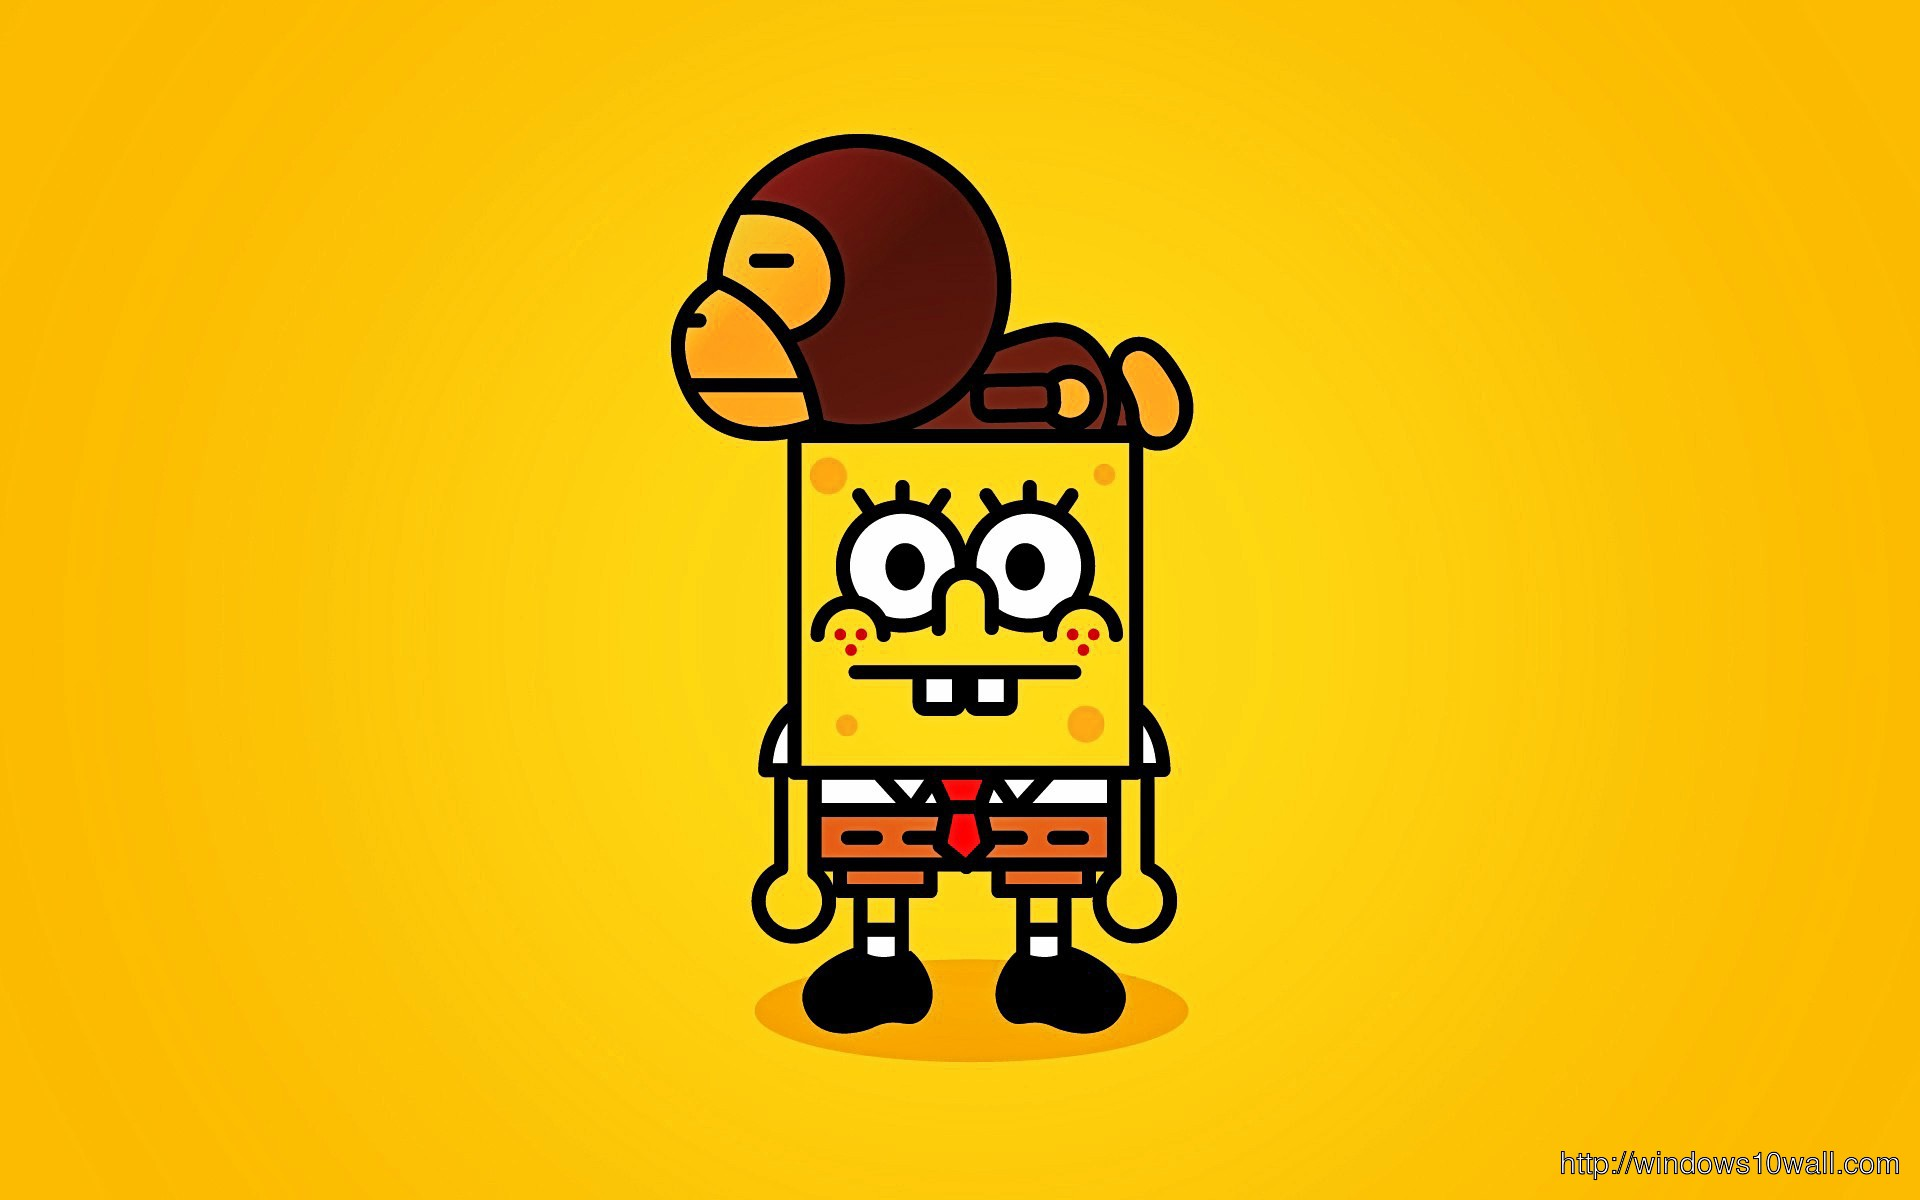 Funny Spongebob Background Wallpaper Windows 10 Wallpapers